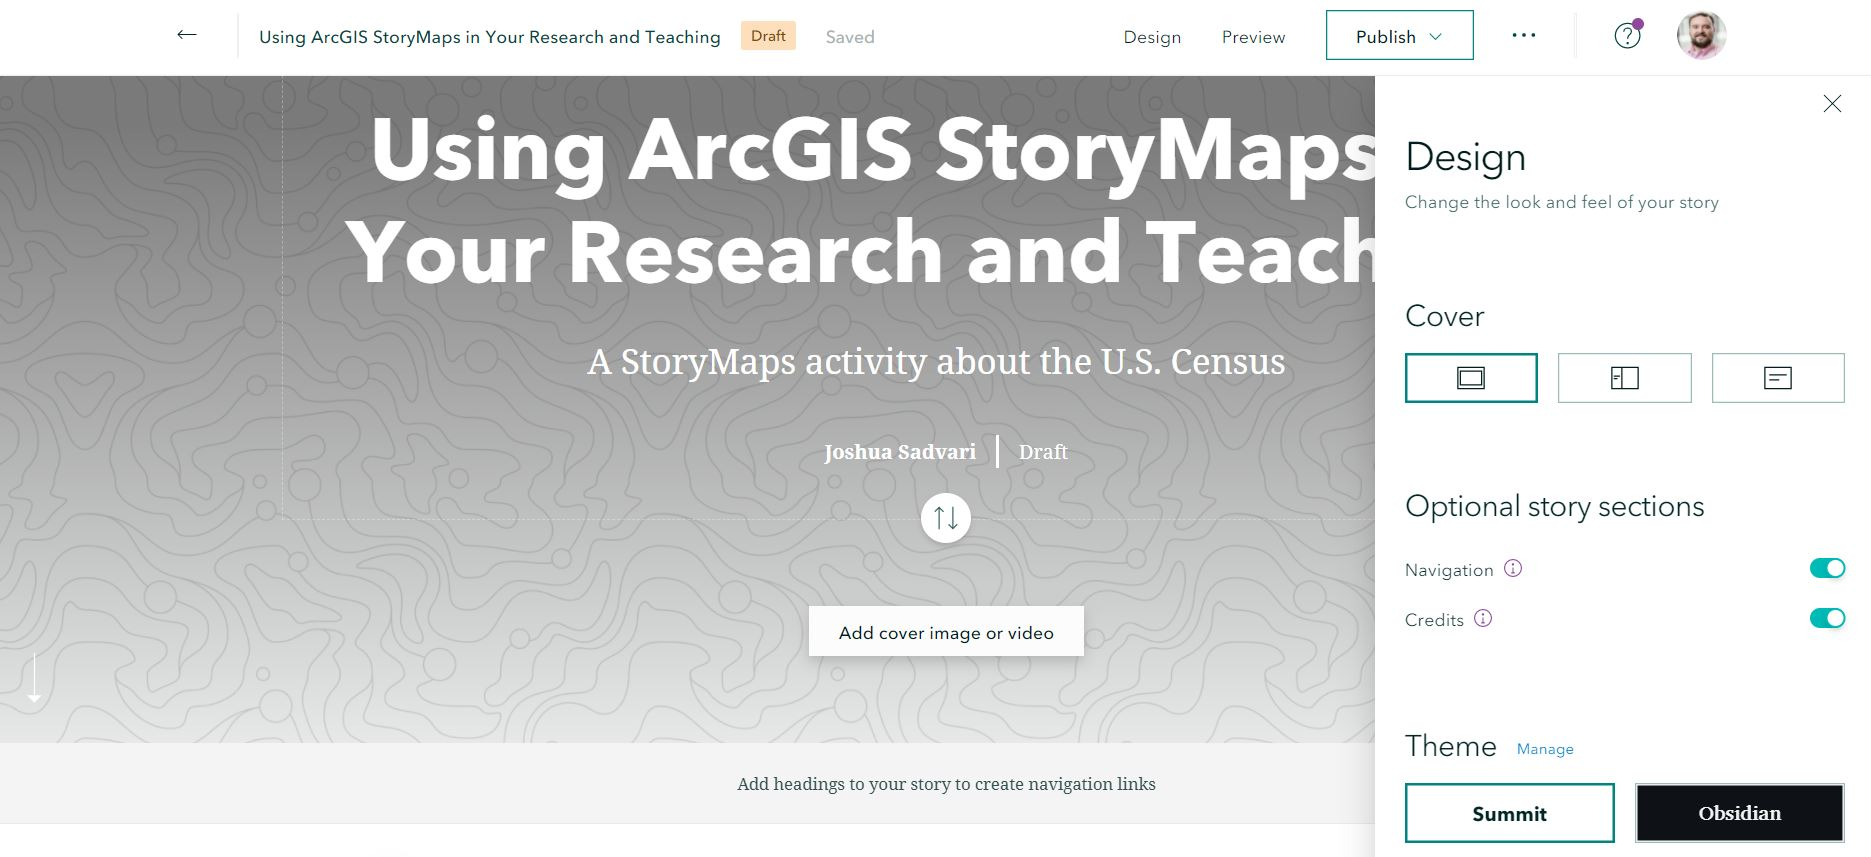 Updating design settings in ArcGIS StoryMaps